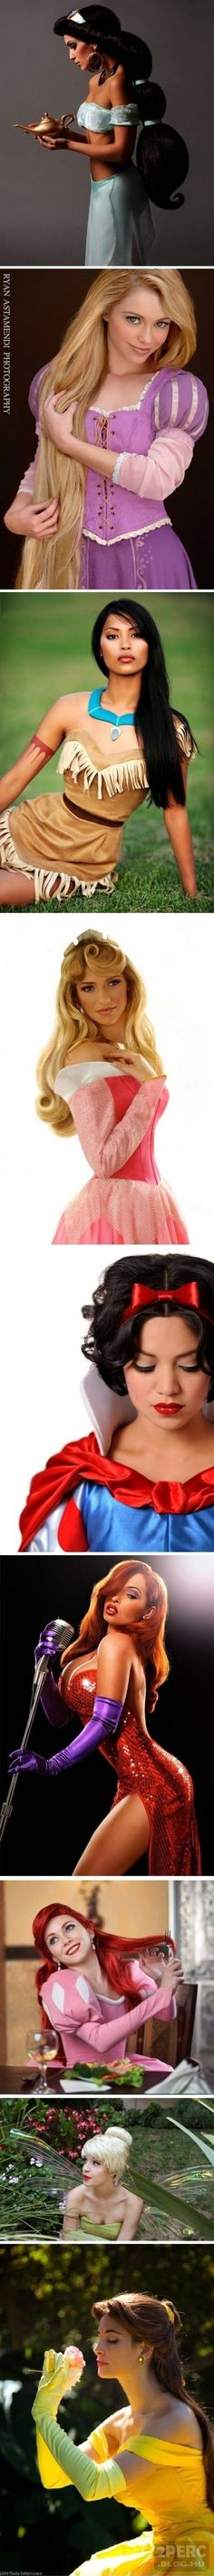 cosplay, princess costumes, real life, halloween costumes, costume ideas, disney princesses, belle, disney characters, snow white